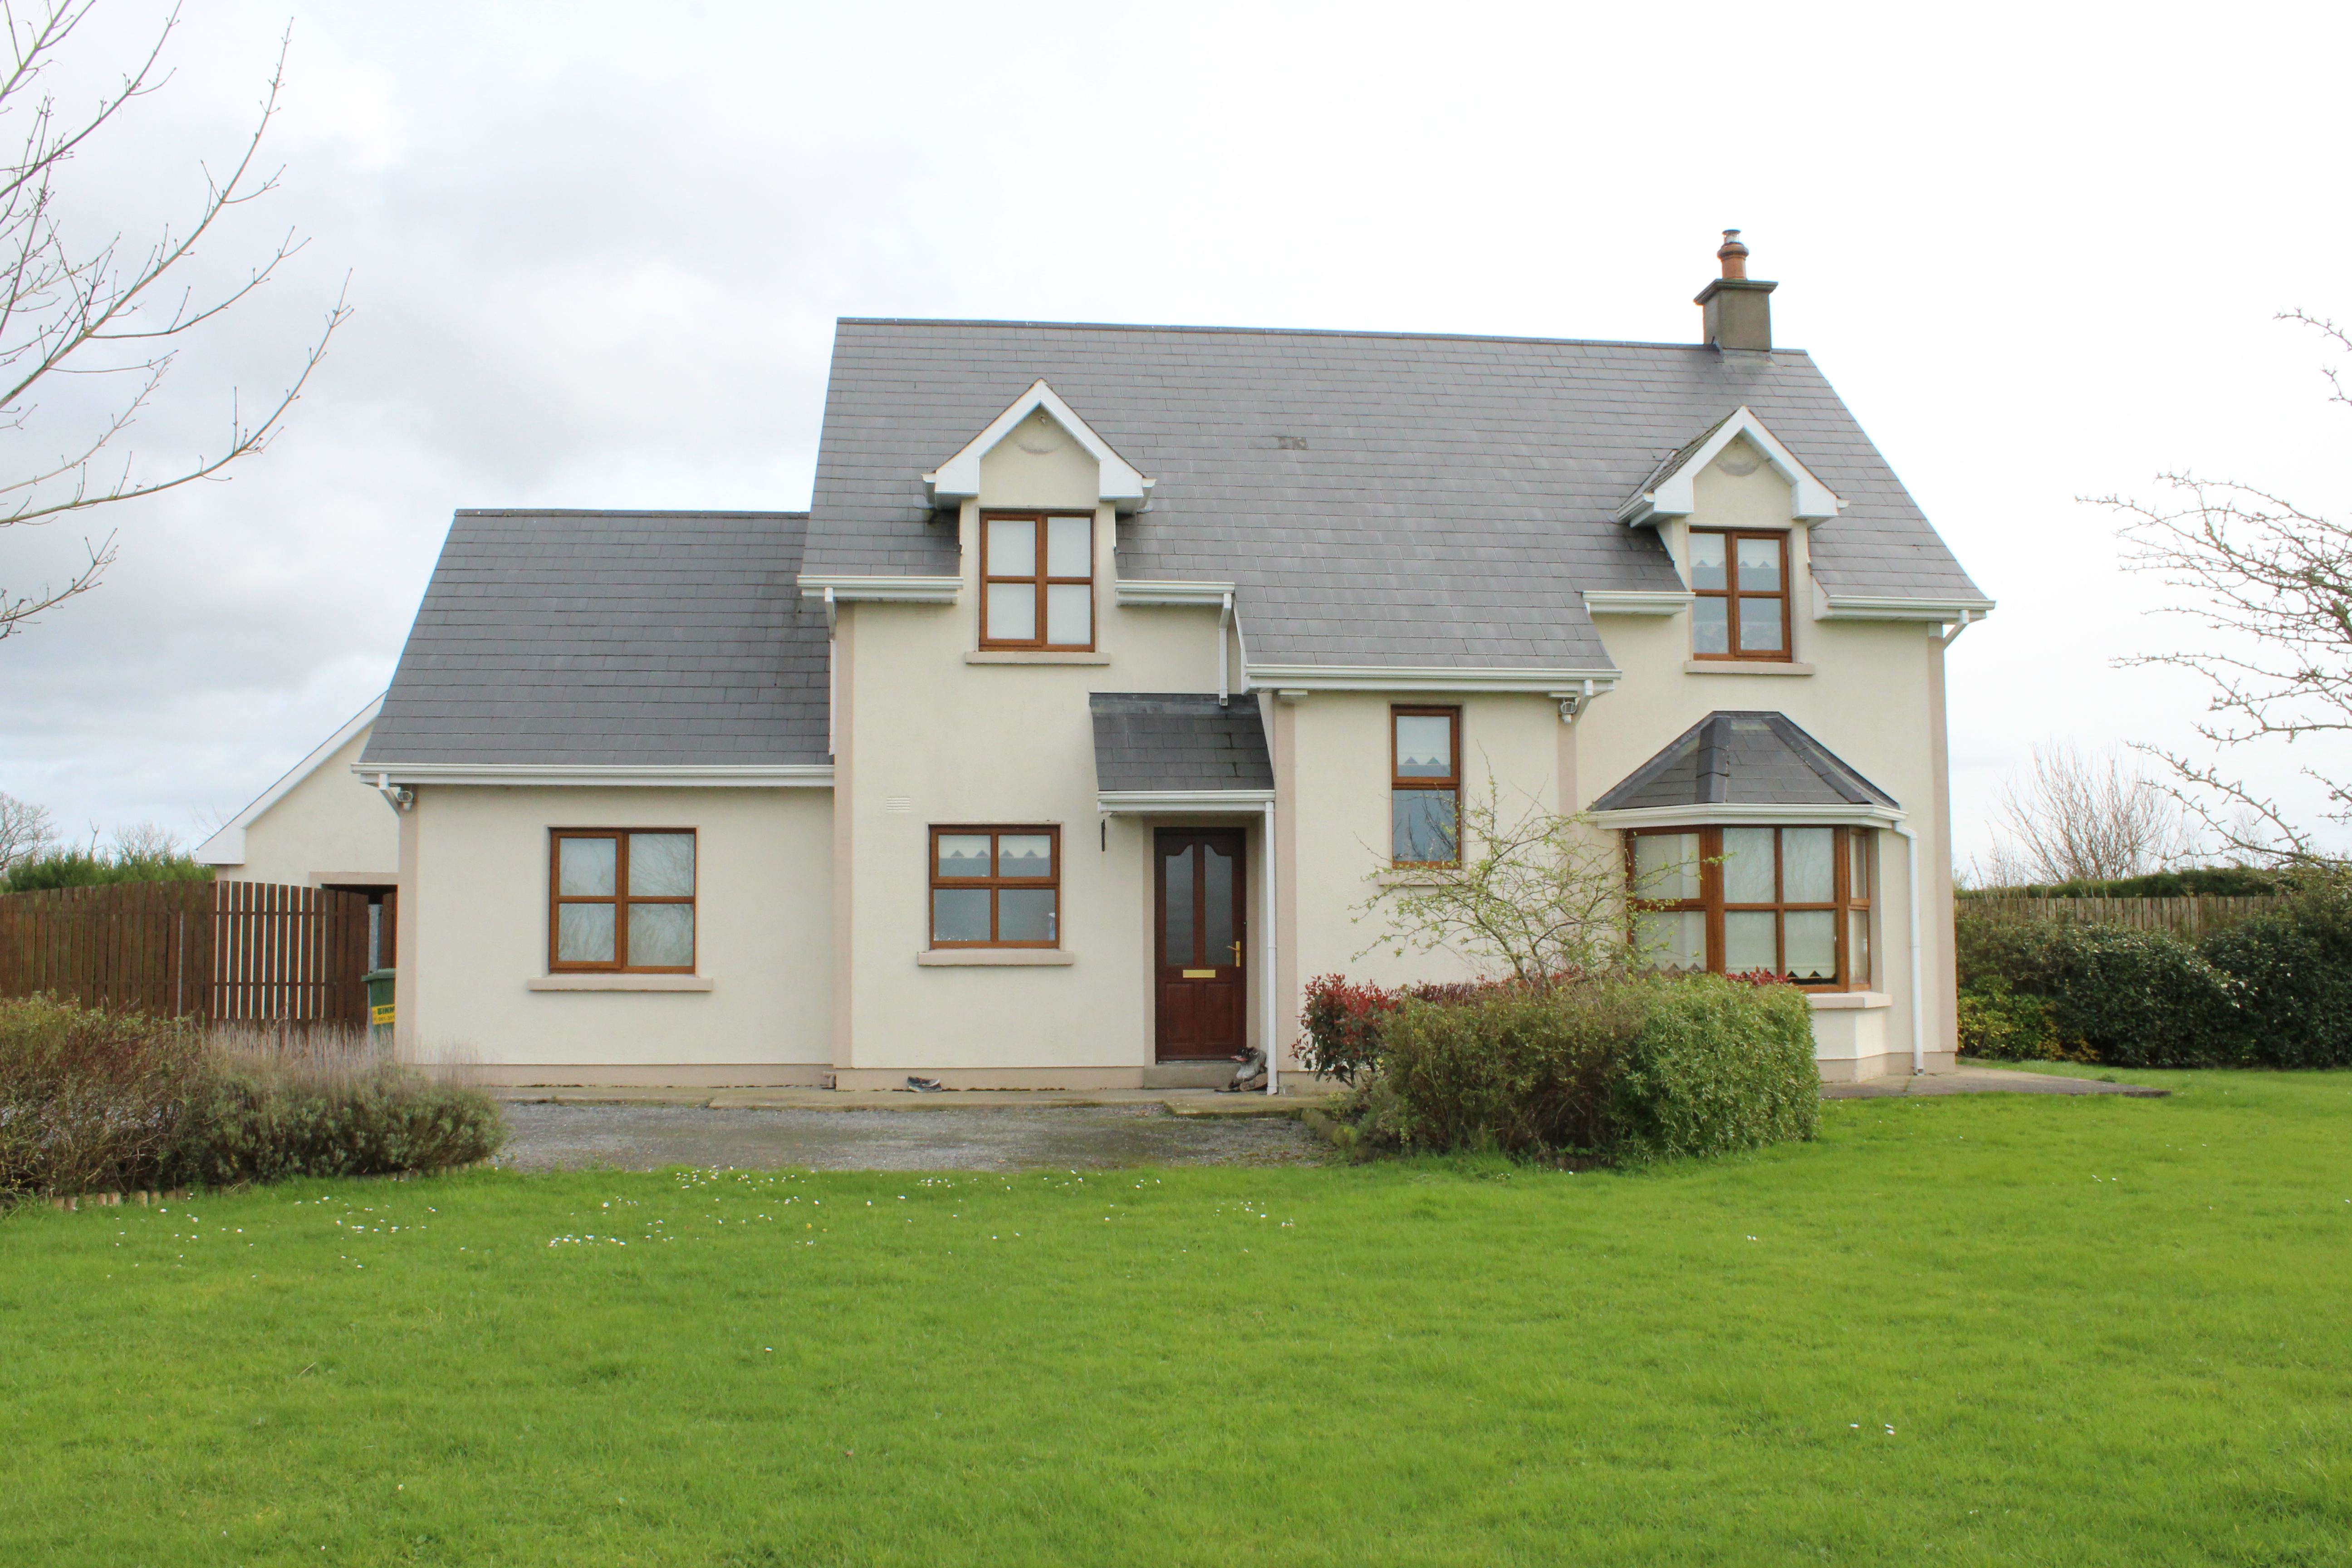 Crossayle, Cappawhite, Co. Tipperary